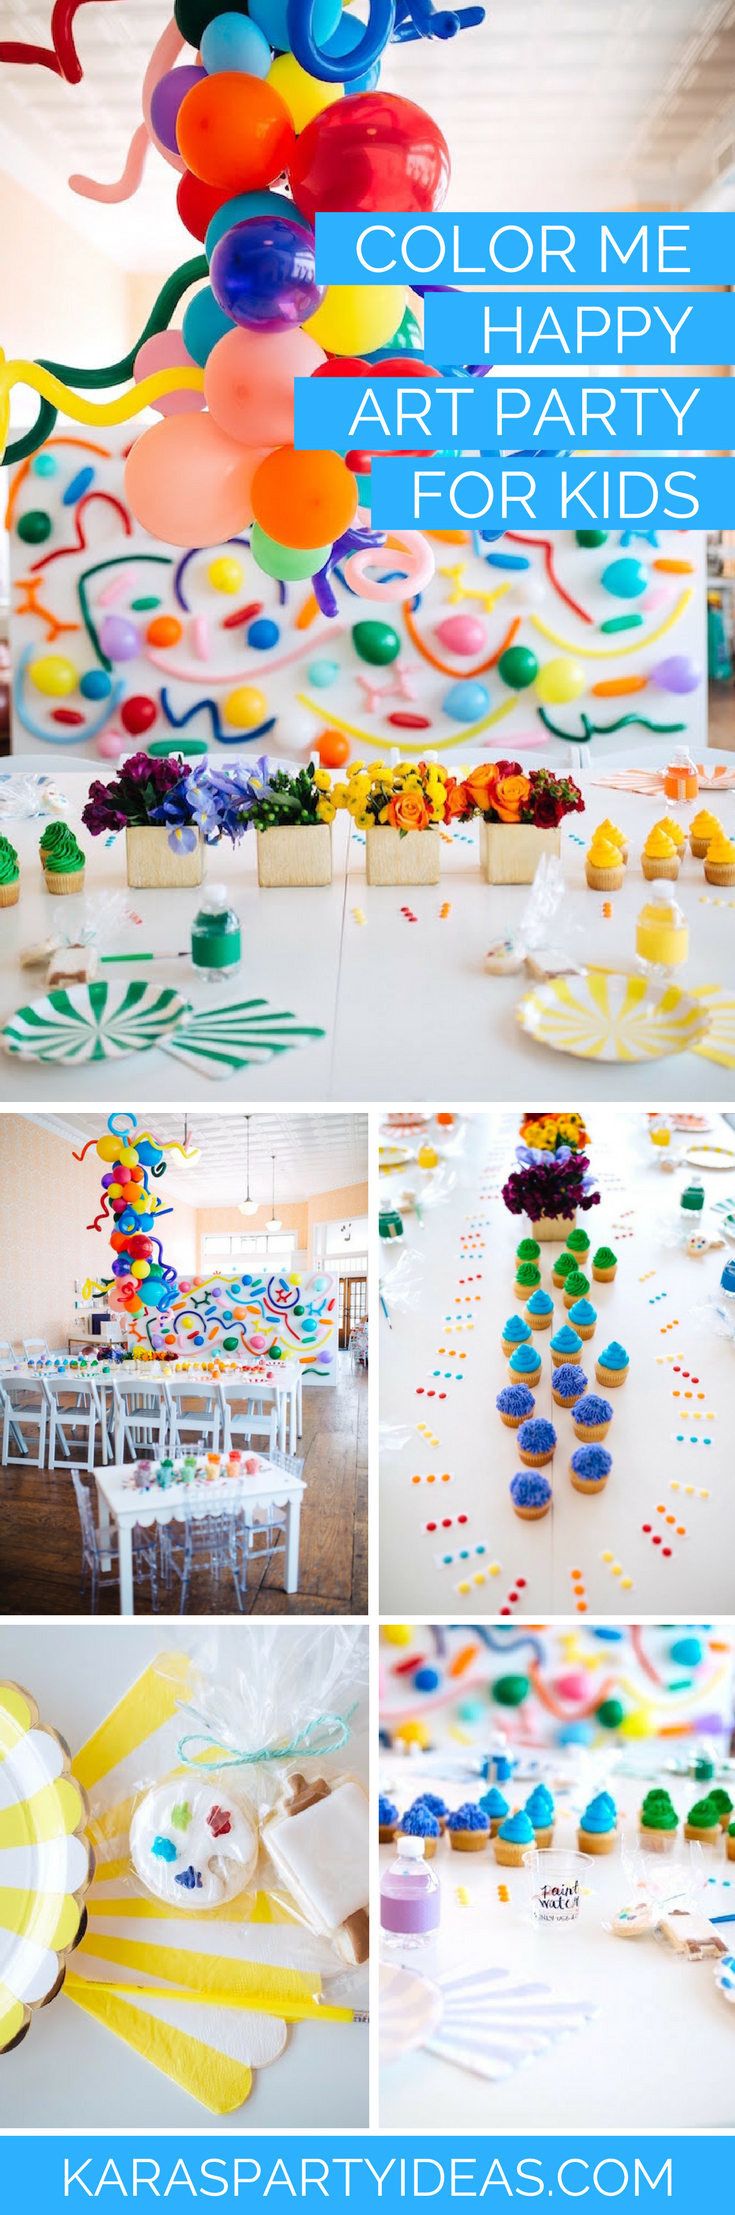 Color Me Happy Art Party for Kids via Kara's Party Ideas - KarasPartyIdeas.com